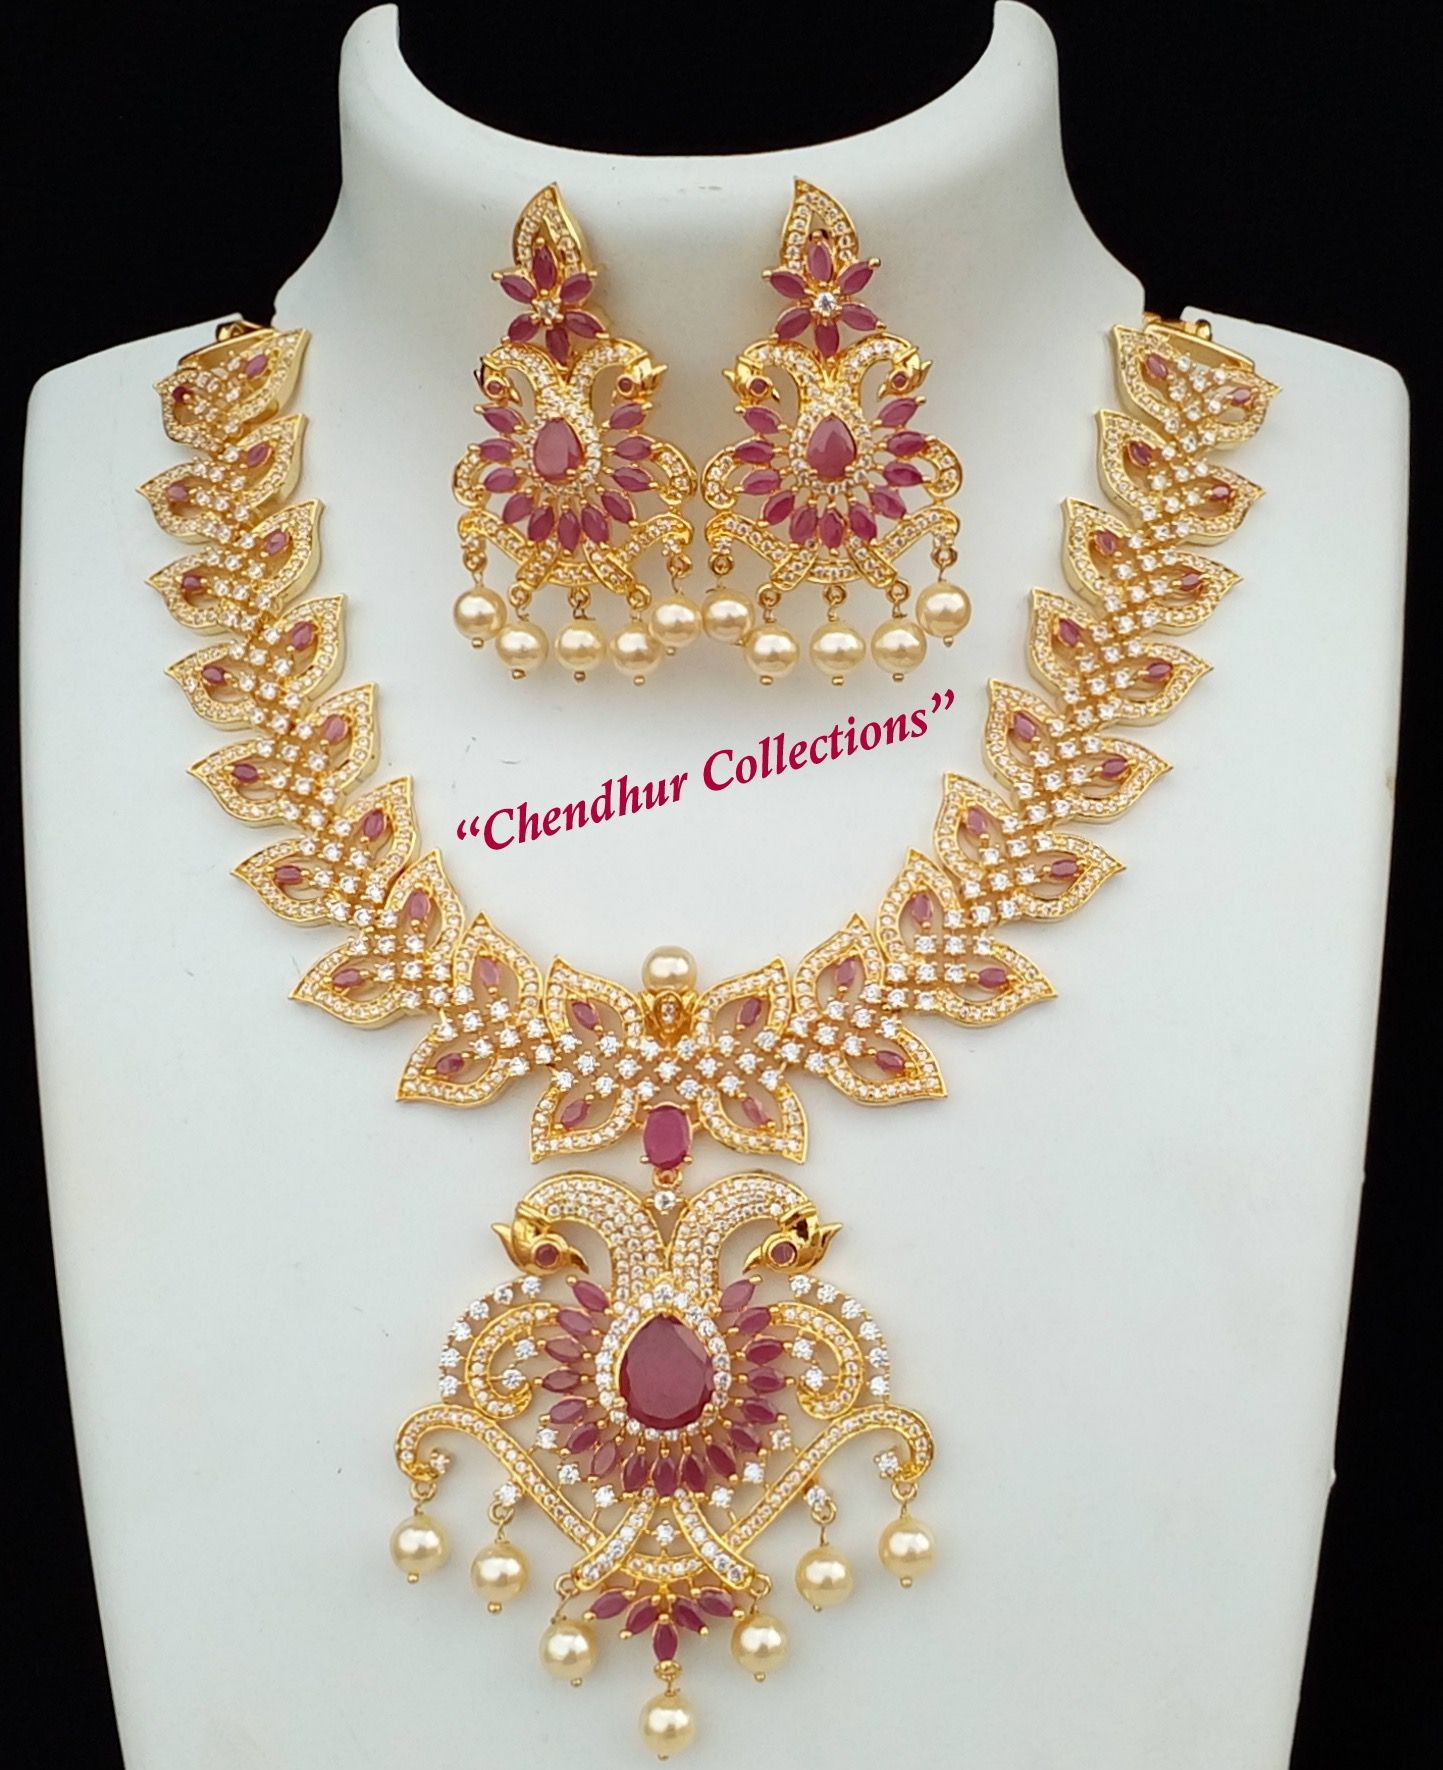 Indian Wedding Jewellery Design Designs Weddings Jewelry Fashion Diamond Necklaces Gold